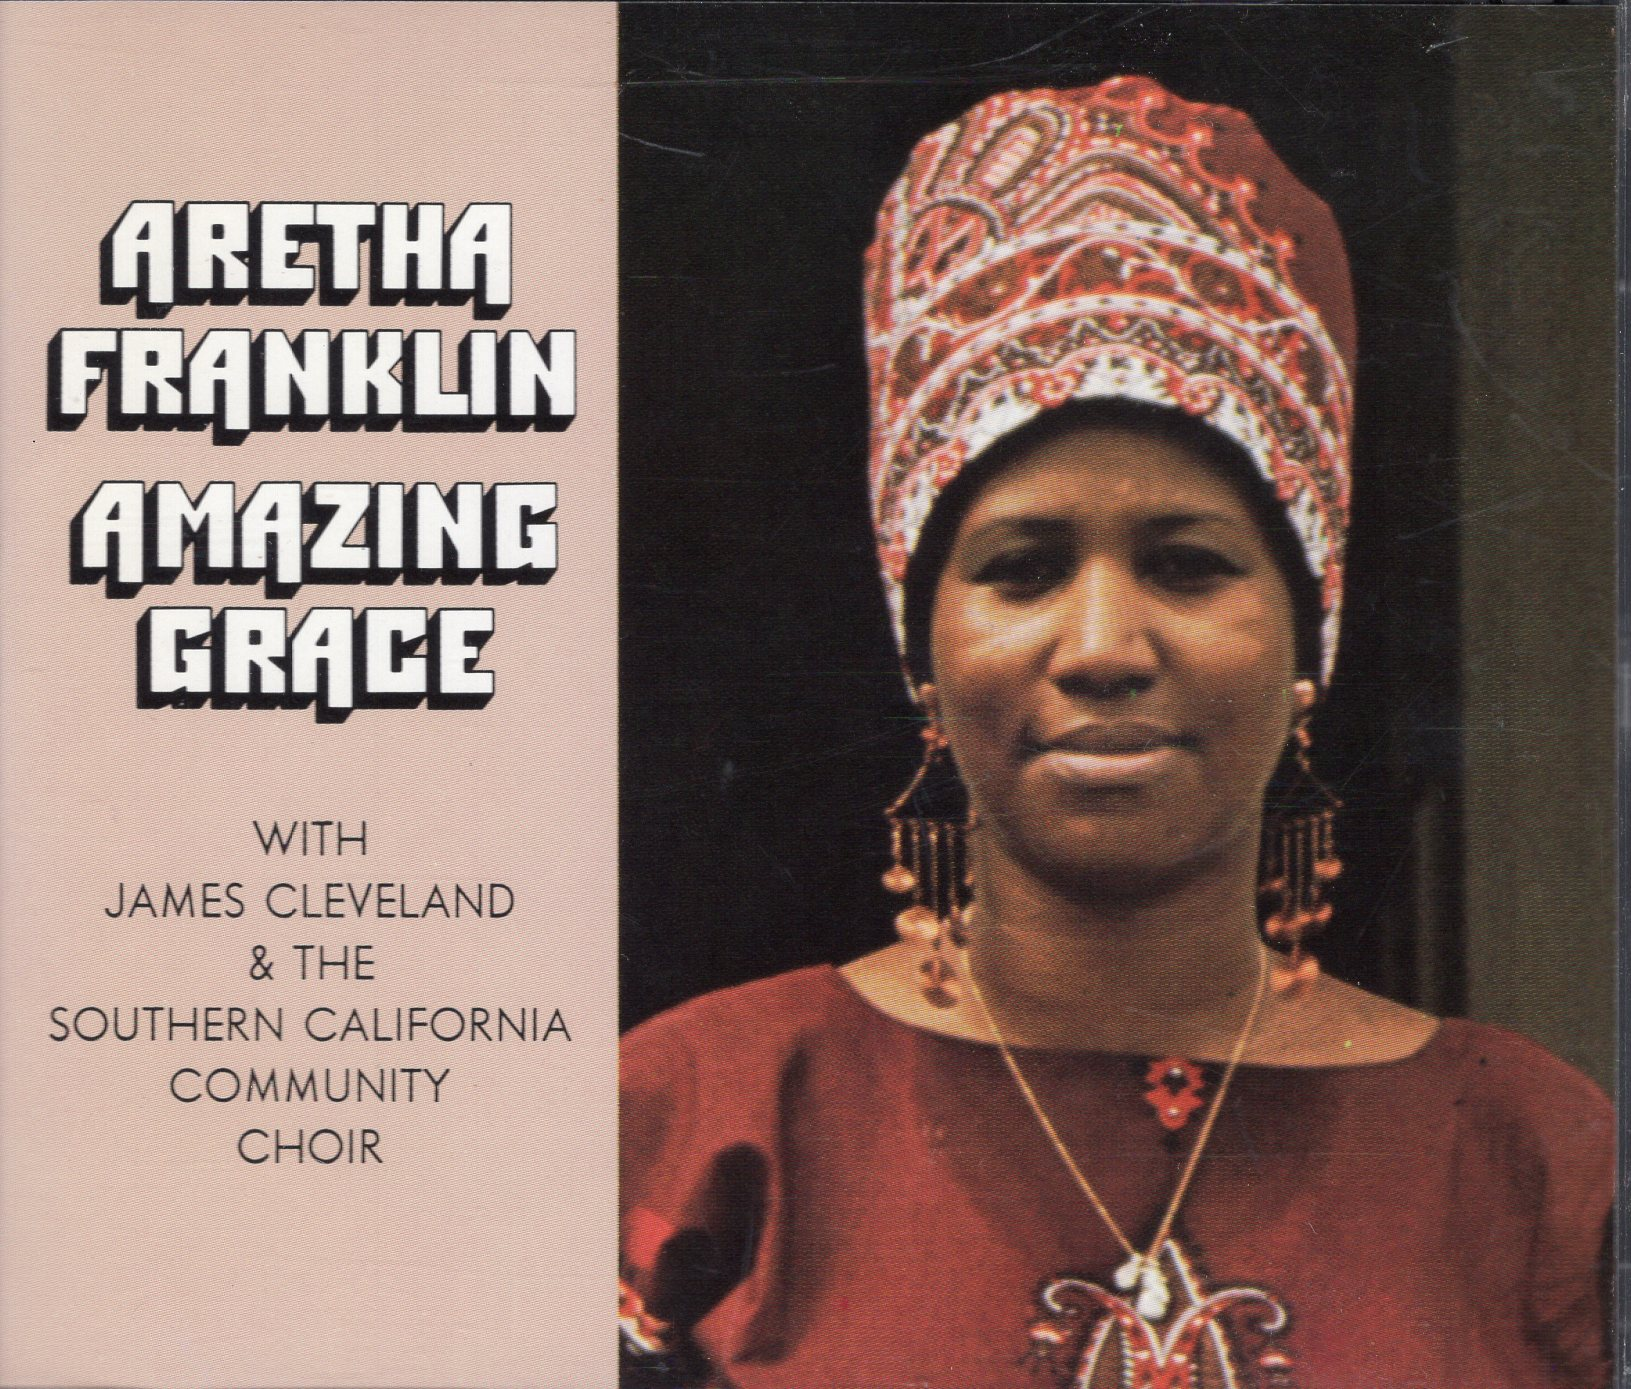 """Amazing Grace"" Aretha Franklin"